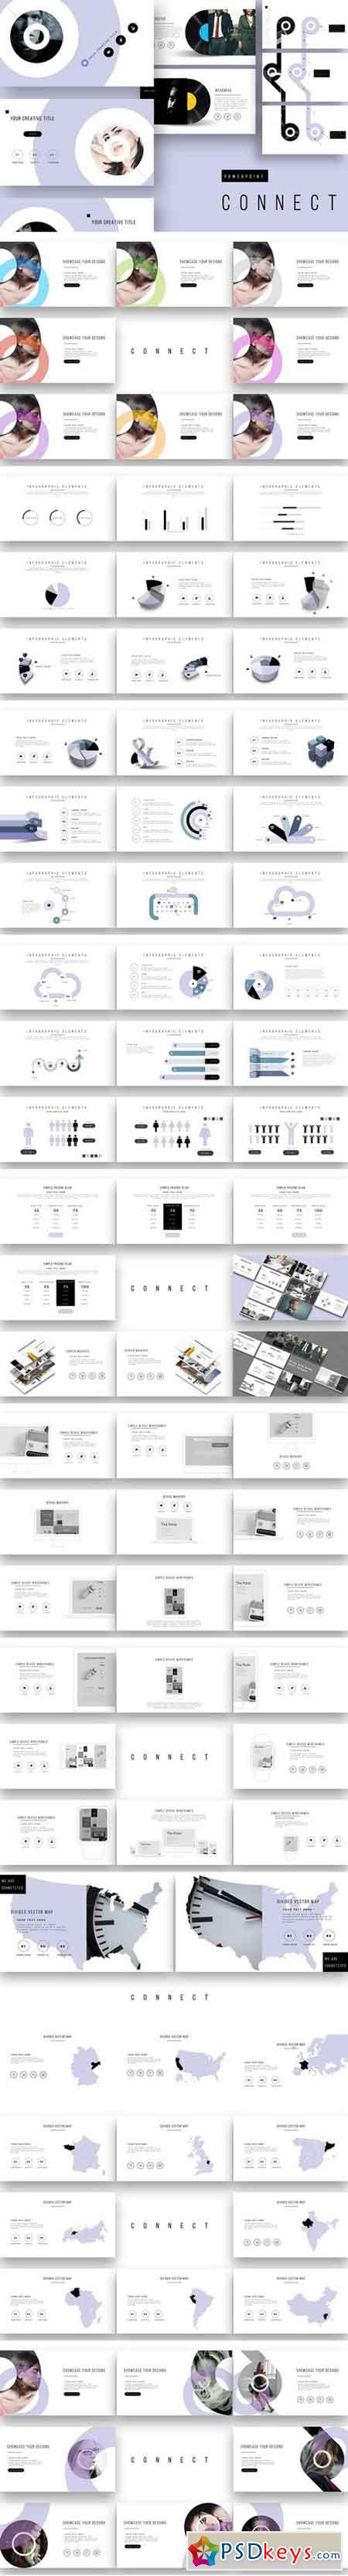 connect powerpoint template + update 2136668 » free download, Modern powerpoint